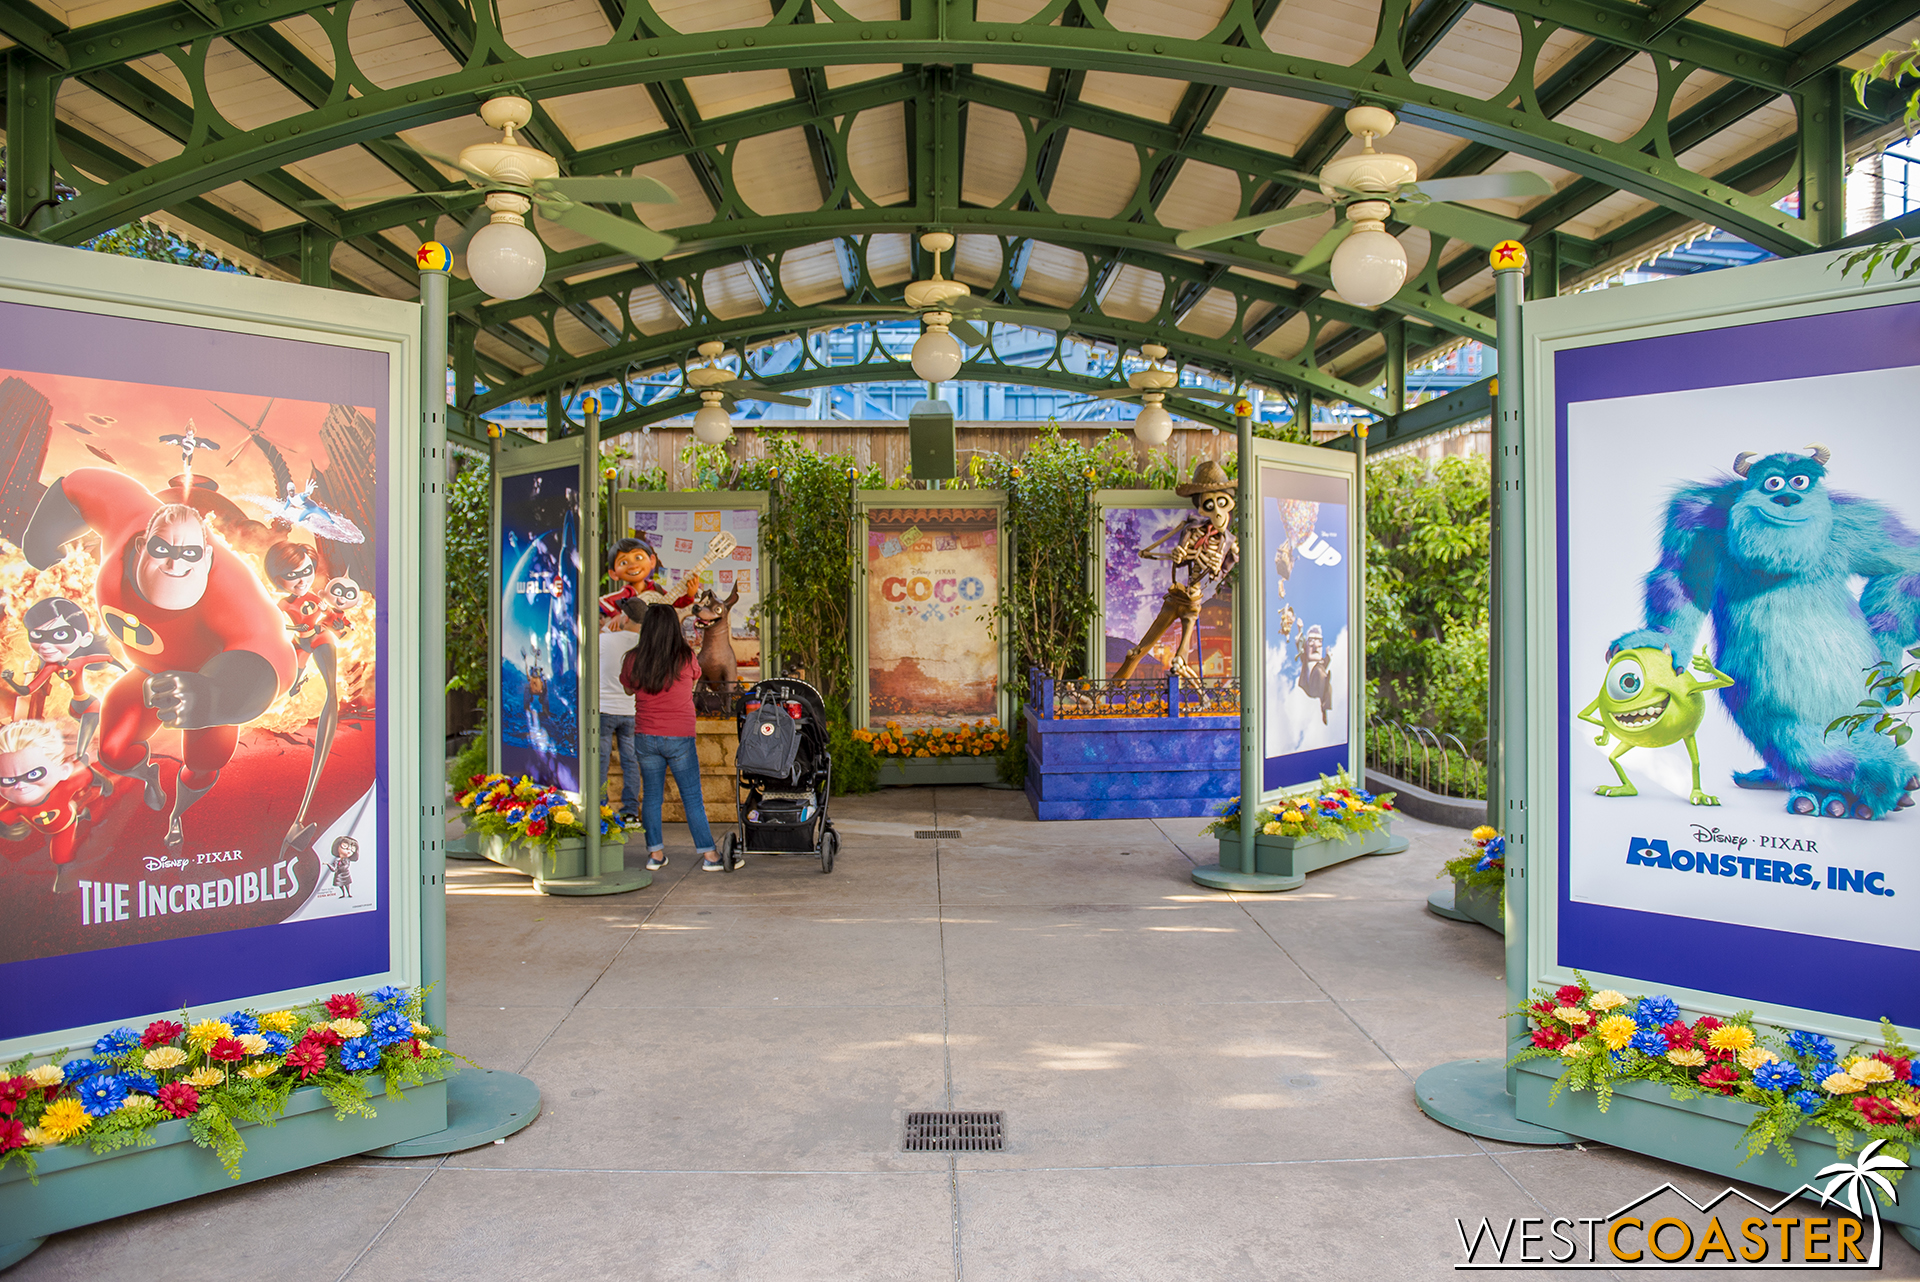 Immediately to the right, where the food festival beer gardens are typically located, is a photo op area with Pixar movie posters and a  Coco  set.